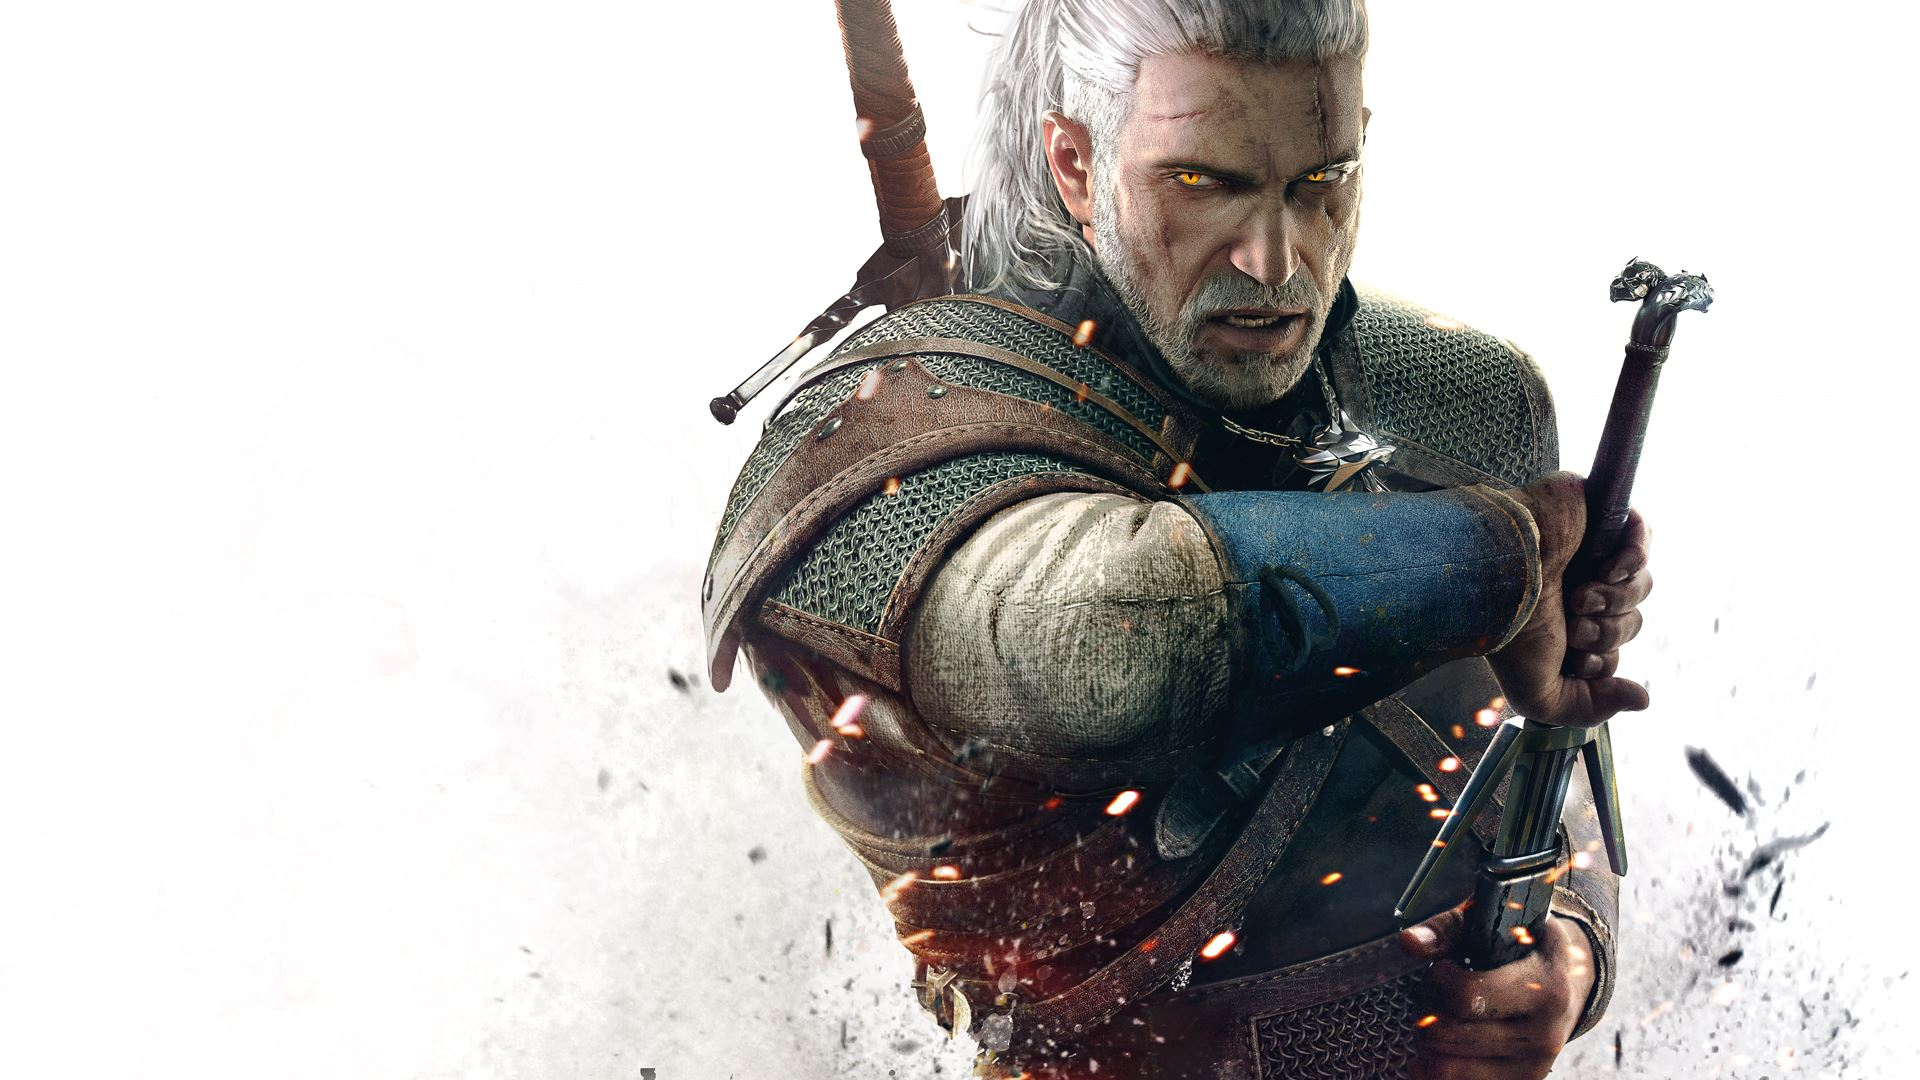 HD Wallpapers The Witcher 3 Wild Hunt Game